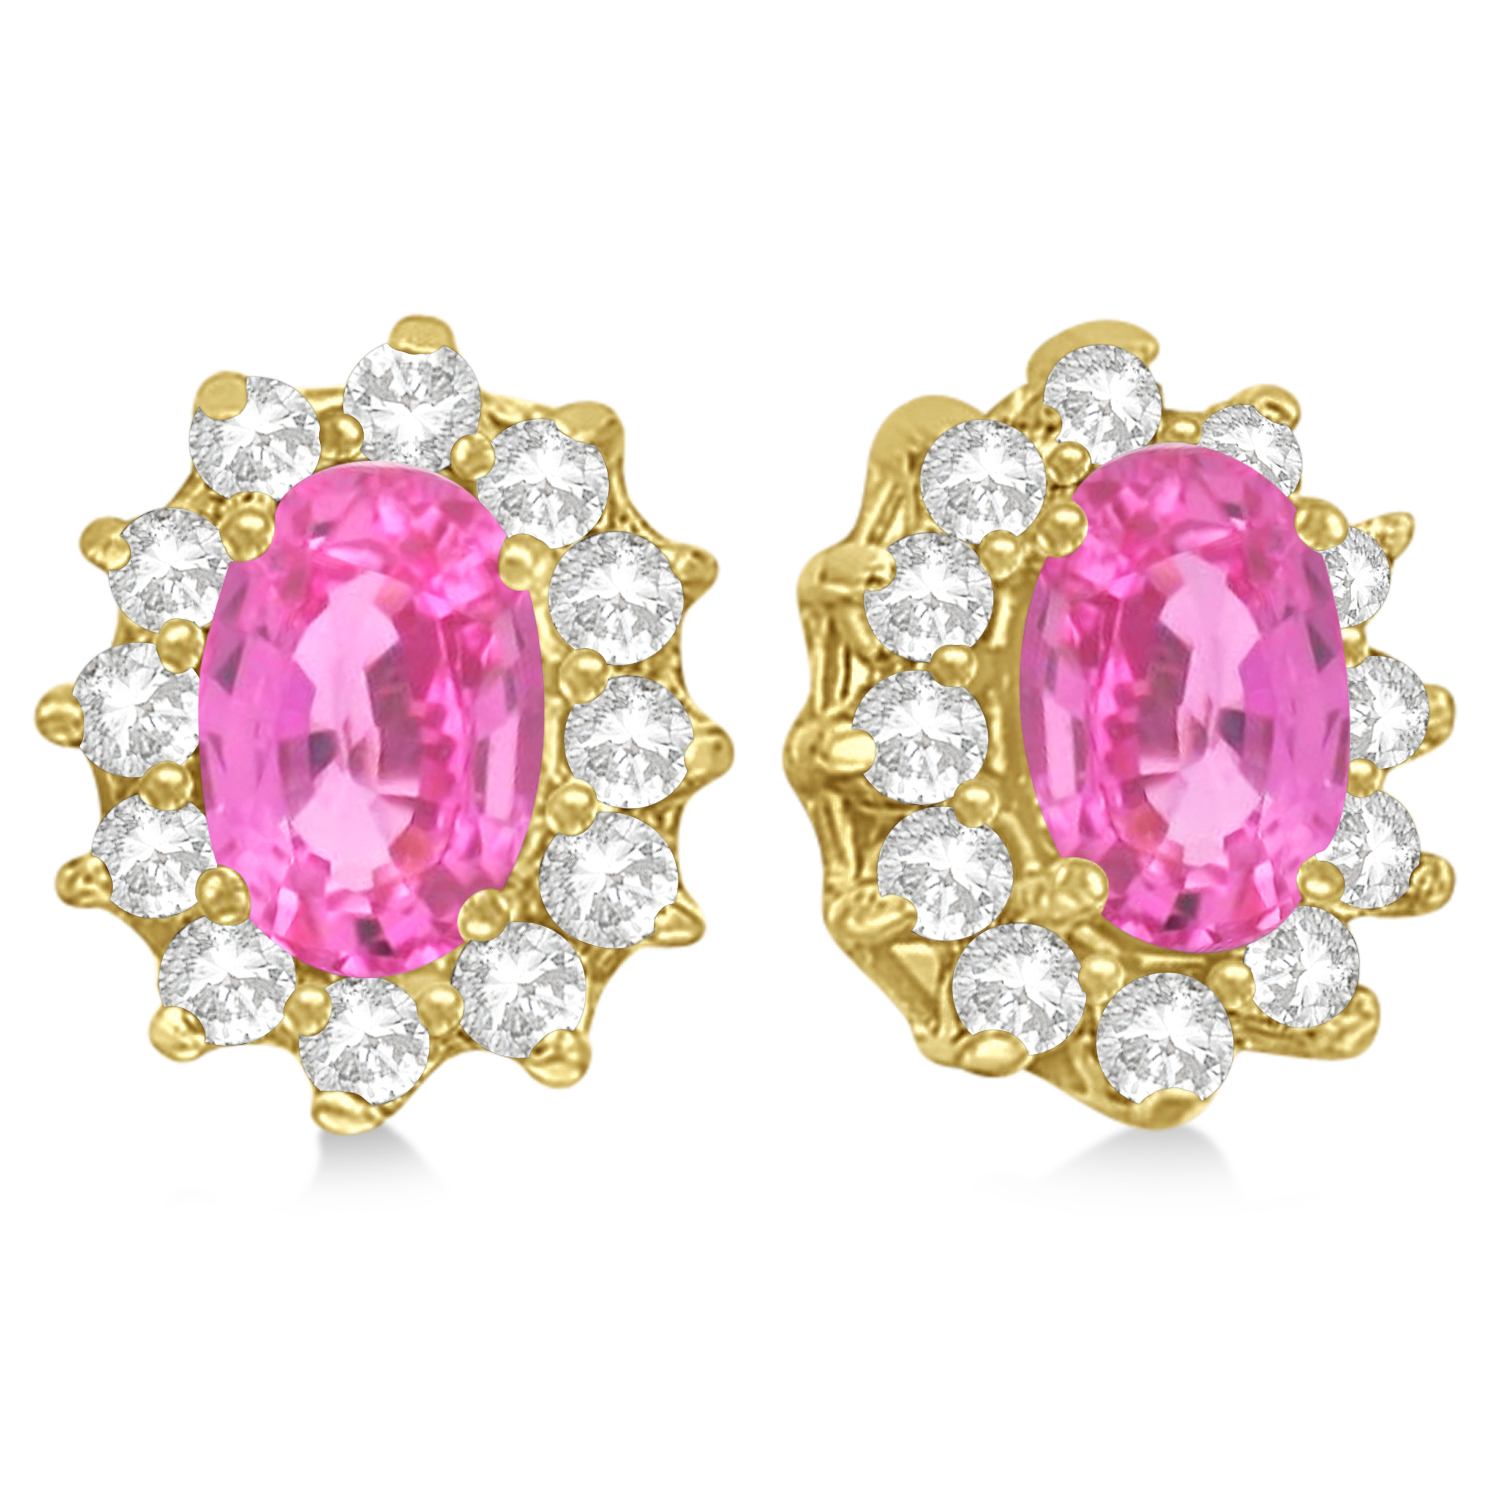 Oval Pink Sapphire & Diamond Accented Earrings 14k Yellow Gold (2.05ct)